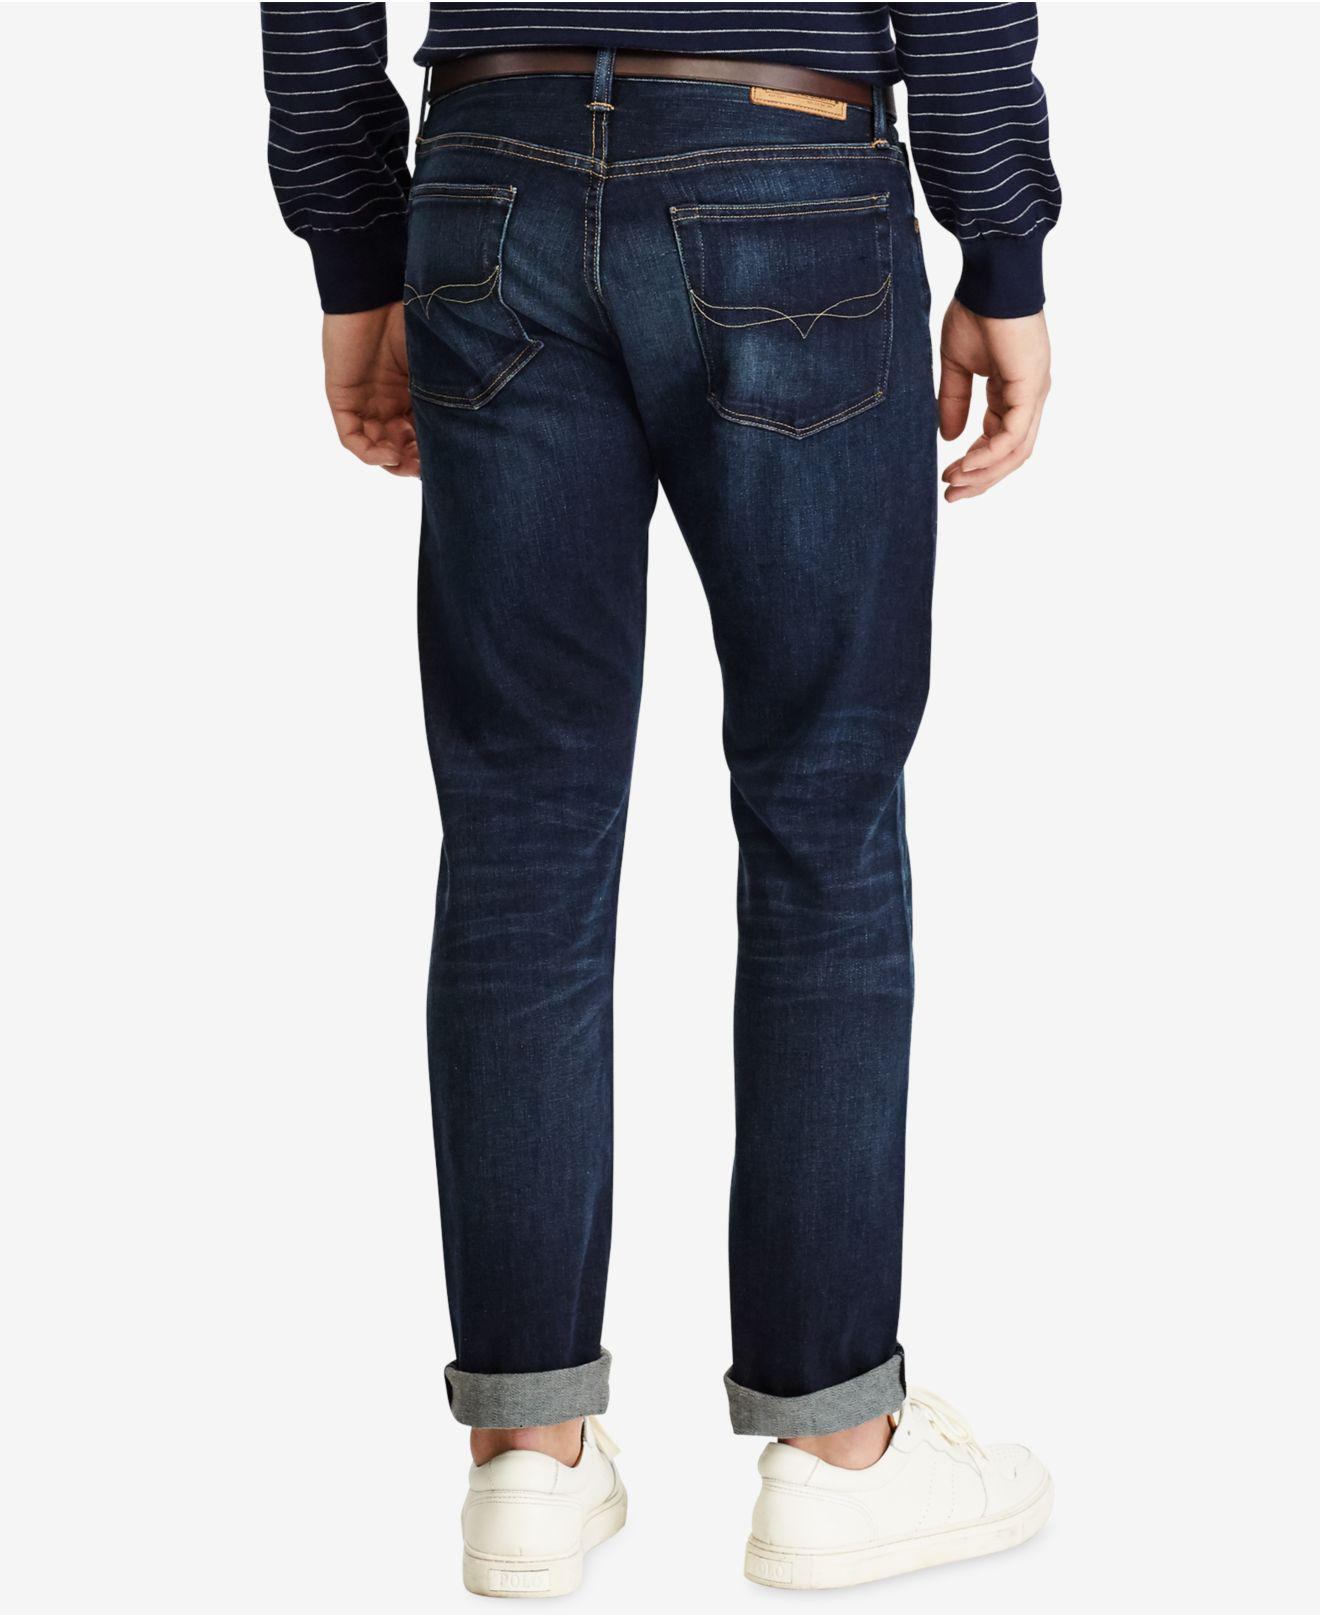 799382ba5 Lyst - Polo Ralph Lauren Big   Tall Hampton Relaxed Straight-fit Stretch  Jeans in Blue for Men - Save 31%